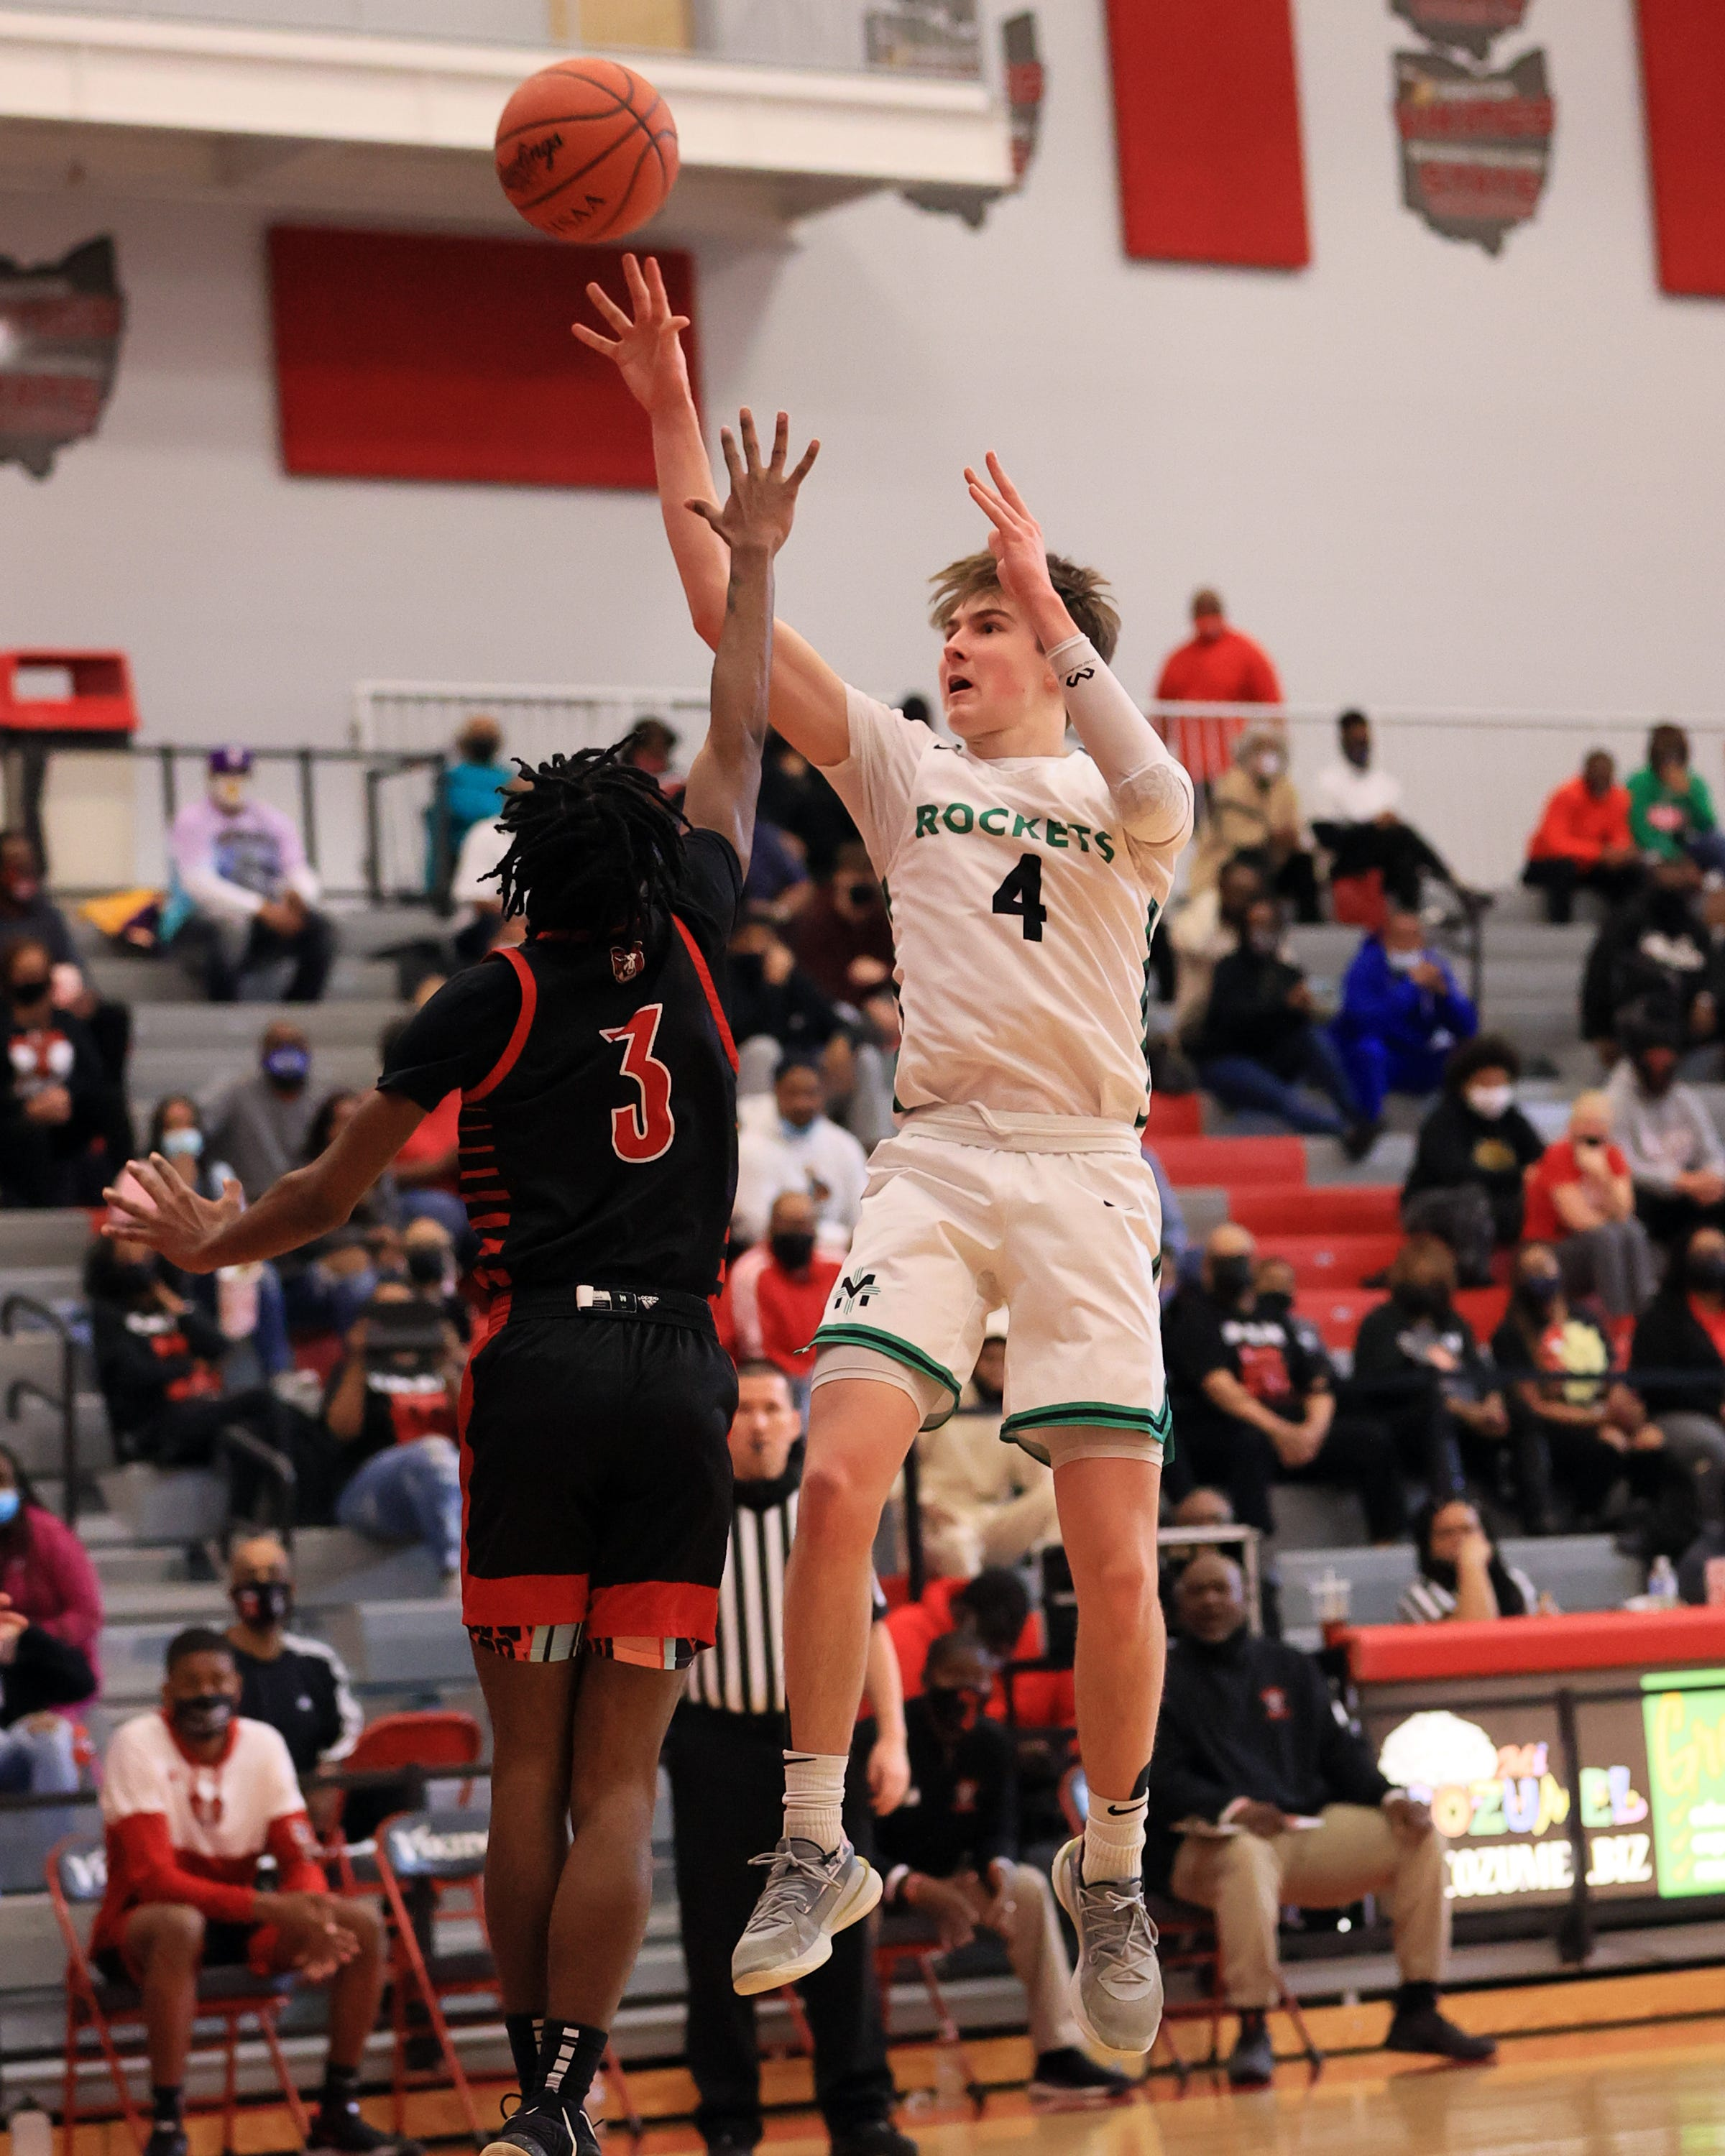 WATCH: McNicholas wins 1st district title since 1999 beating Trotwood-Madison in DII